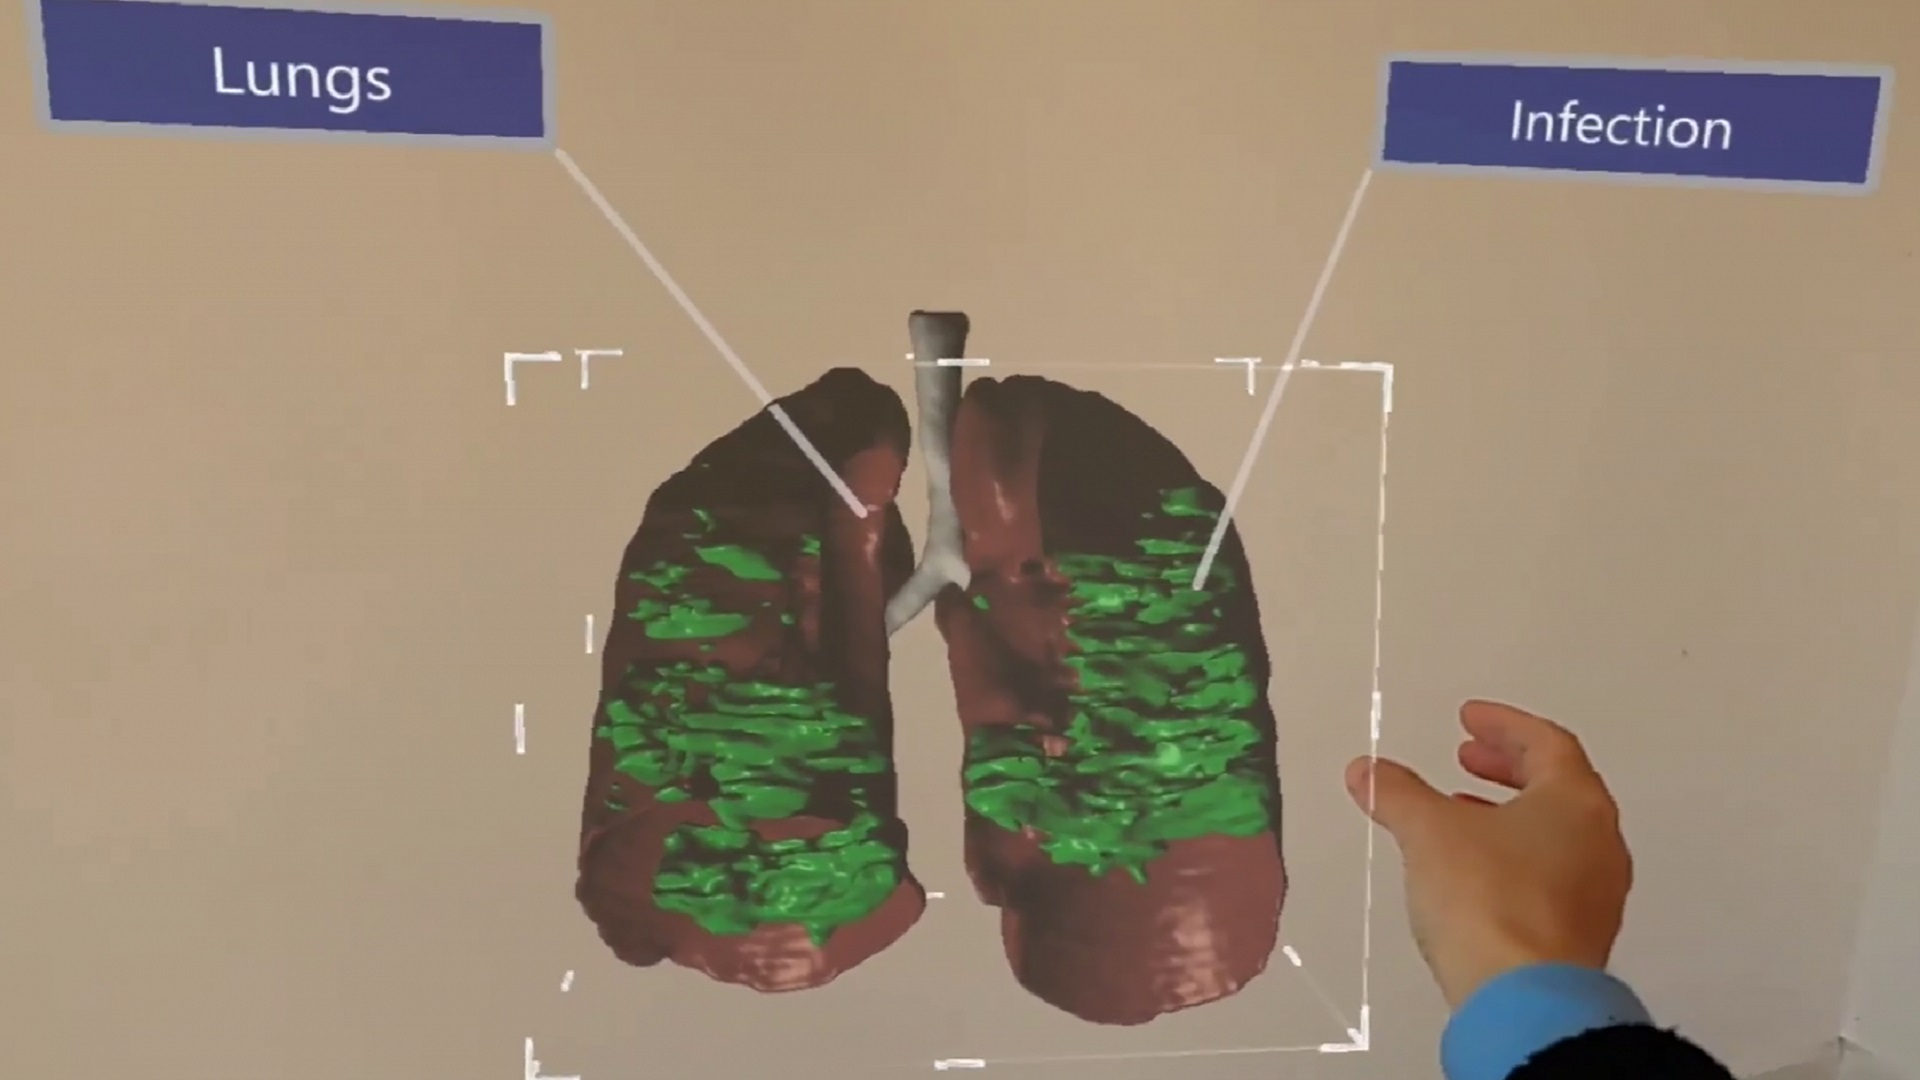 3D model of COVID-19 infected lung